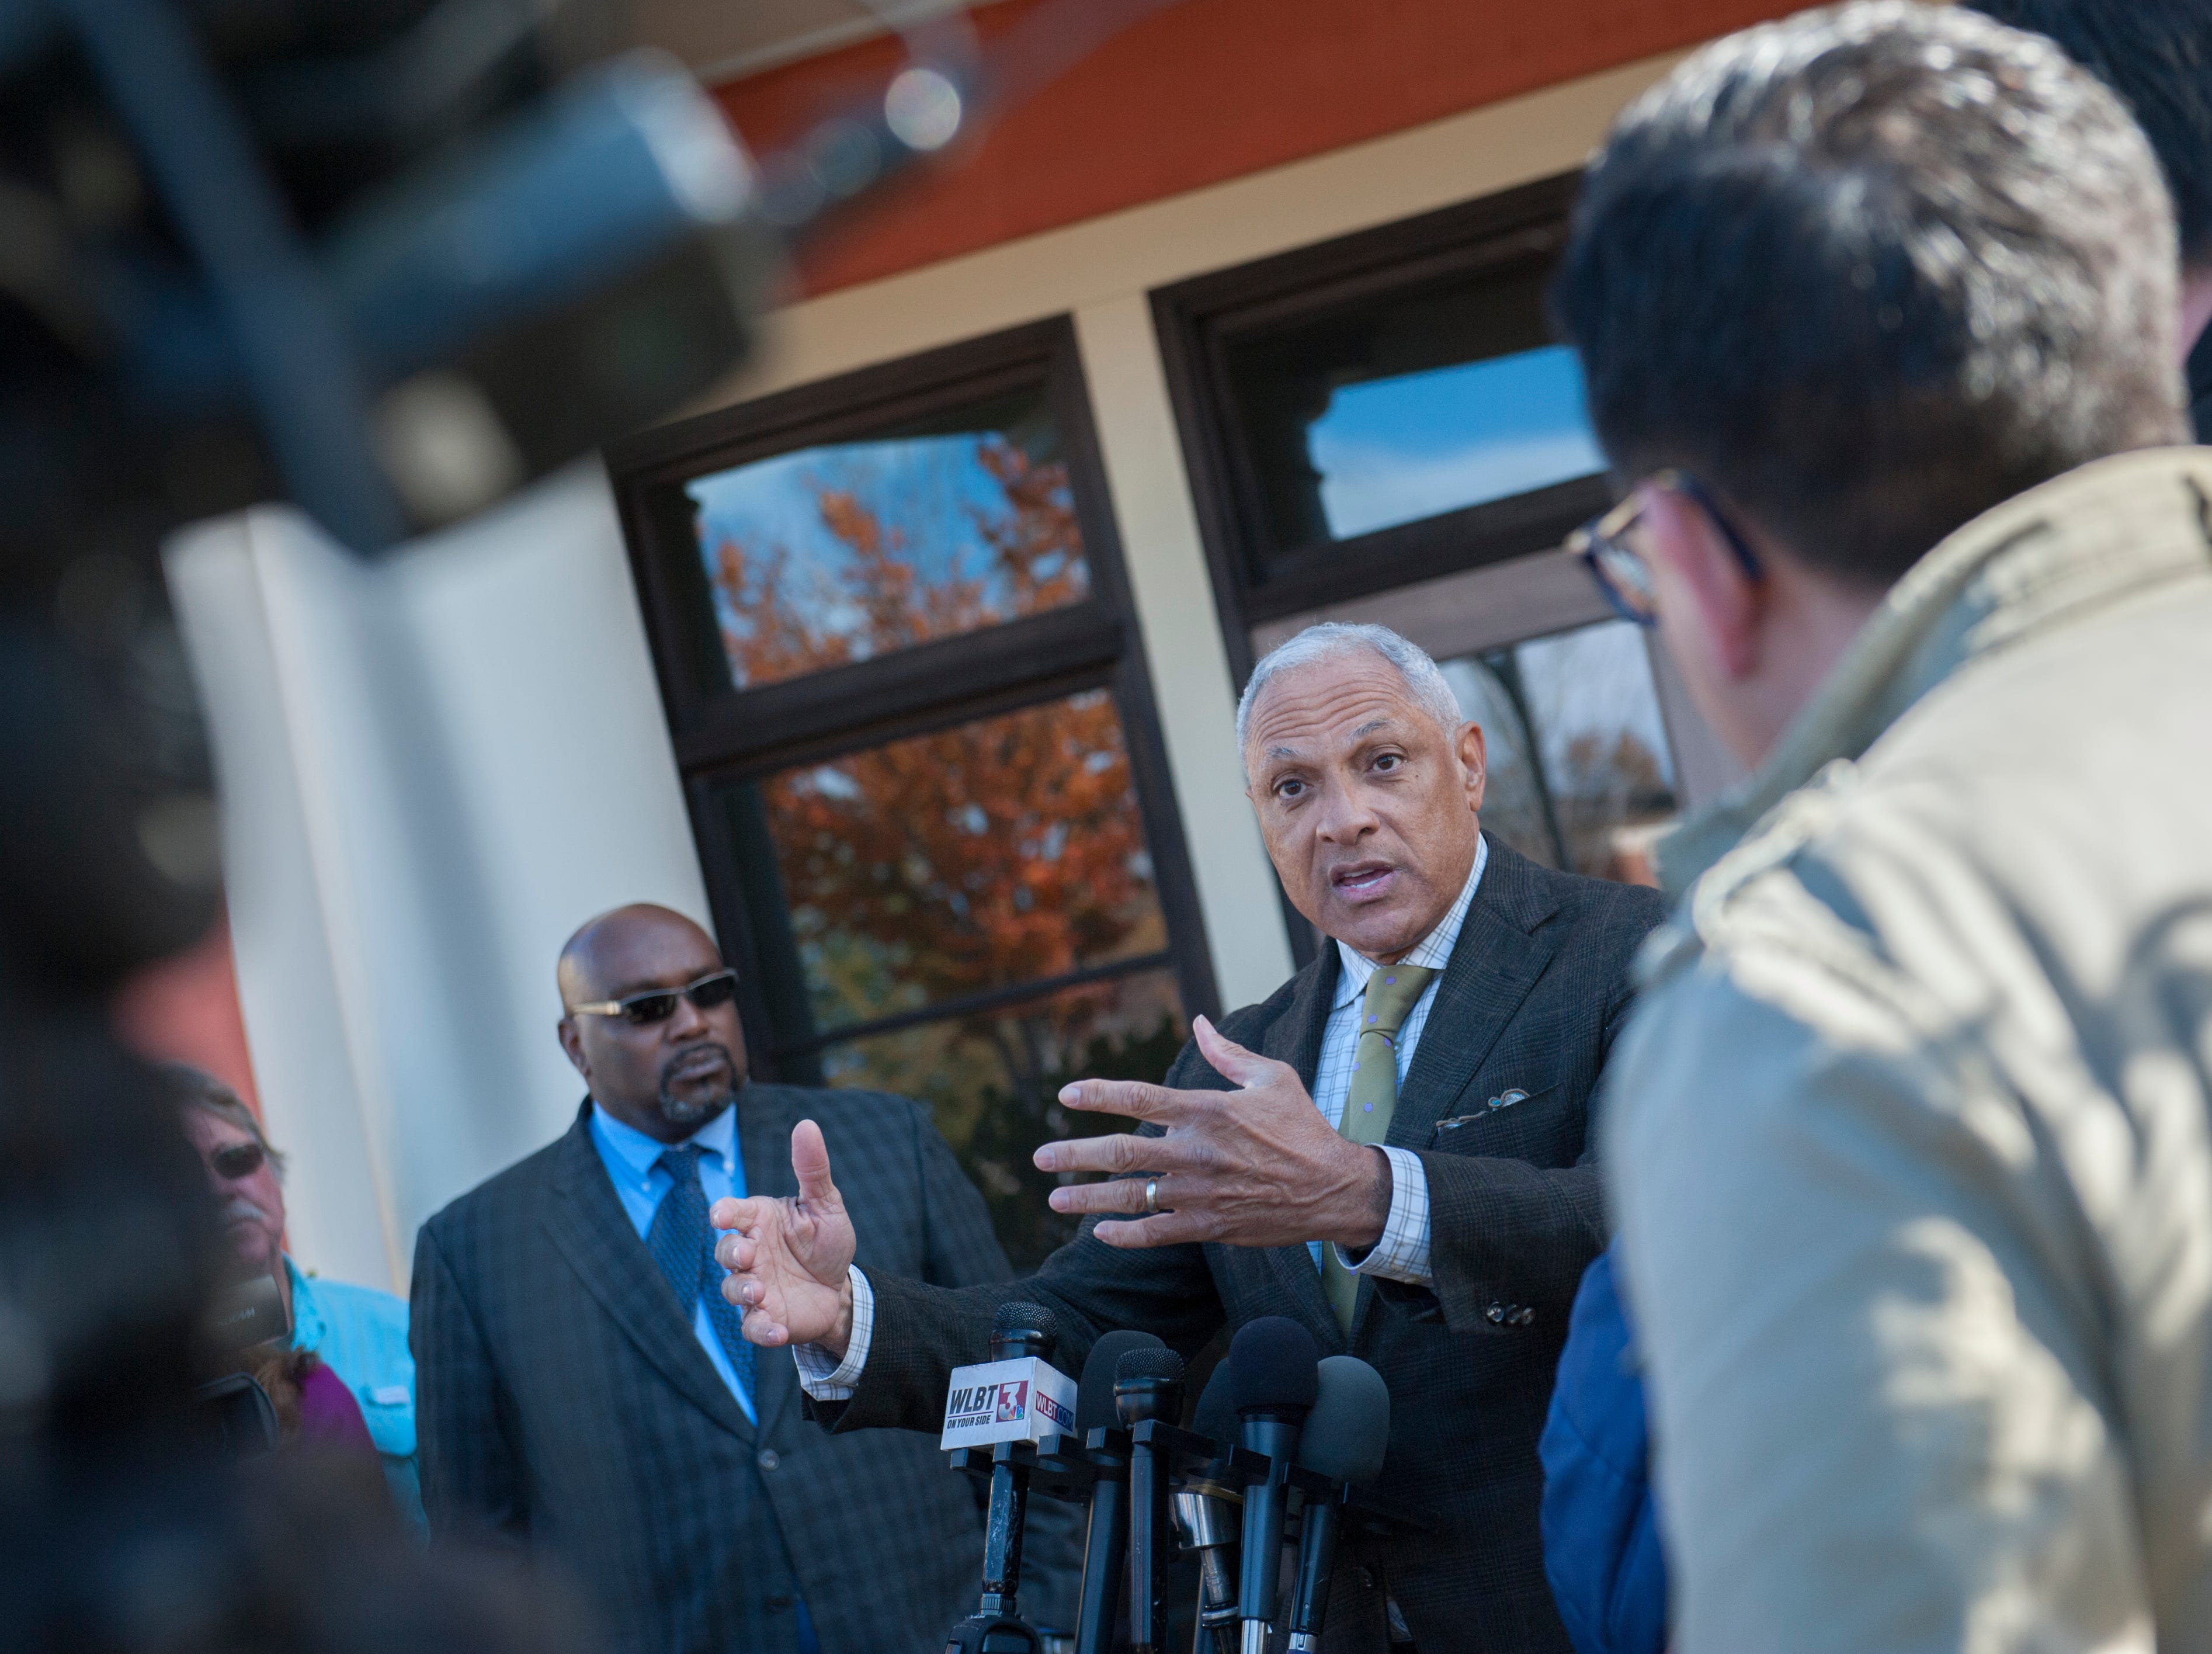 Senate candidate Mike Espy answers questions from media outside Local 463 in Ridgeland, Miss. Monday, Nov. 26, after he and his wife, Portia, stopped by the restaurant for lunch. Voters head to the polls Tuesday, Nov. 27, for a runoff to see who will serve the final two years of retired Sen. Thad Cochran's term, Espy or Cindy Hyde-Smith.